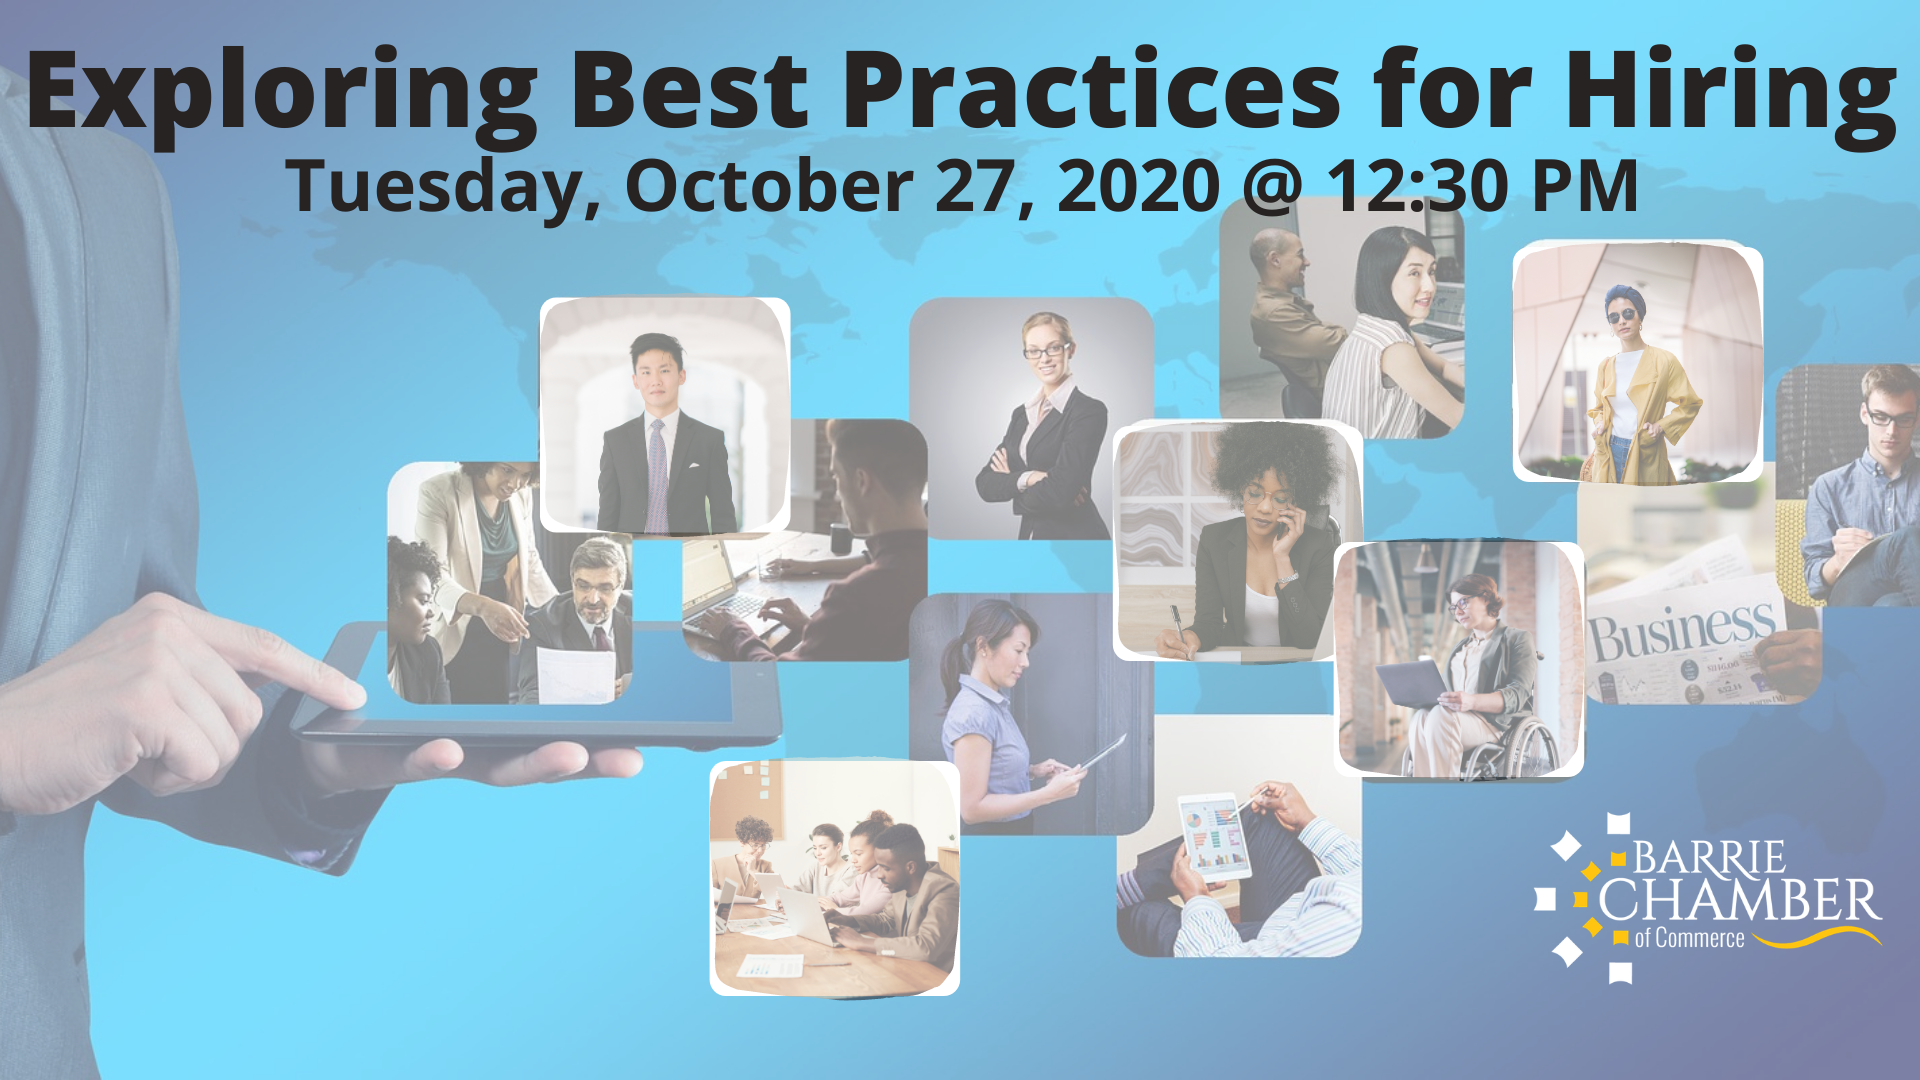 Exploring Best Practices in Hiring -Tuesday, October 27, 2020 - 12:30 pm